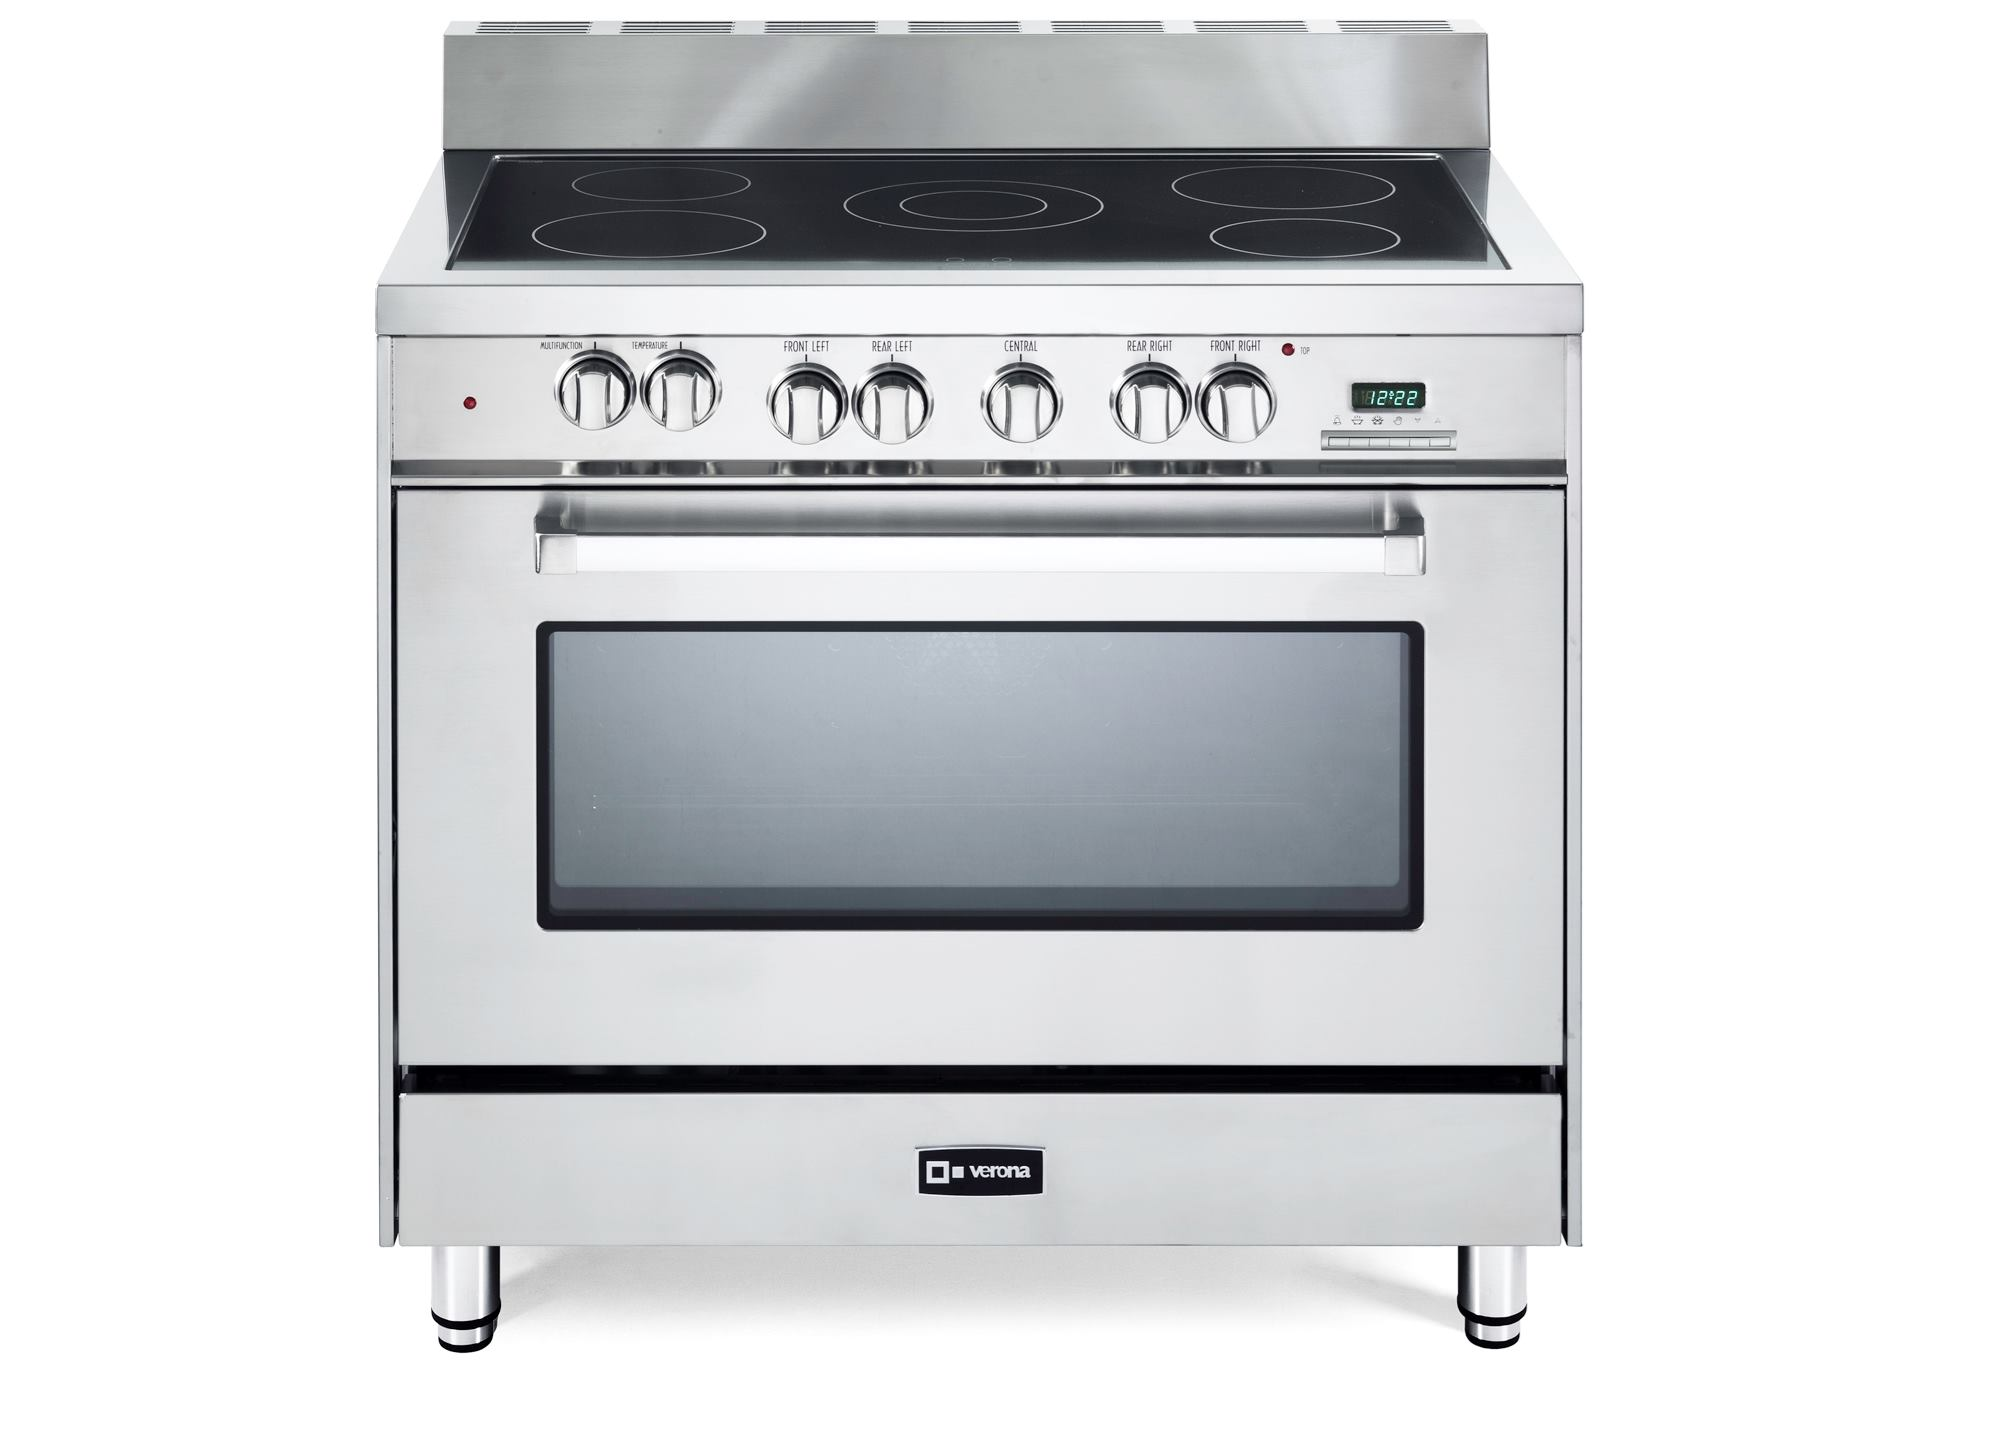 36 Electric Range >> Verona Appliances 36-inch All-Electric Range | JLC Online